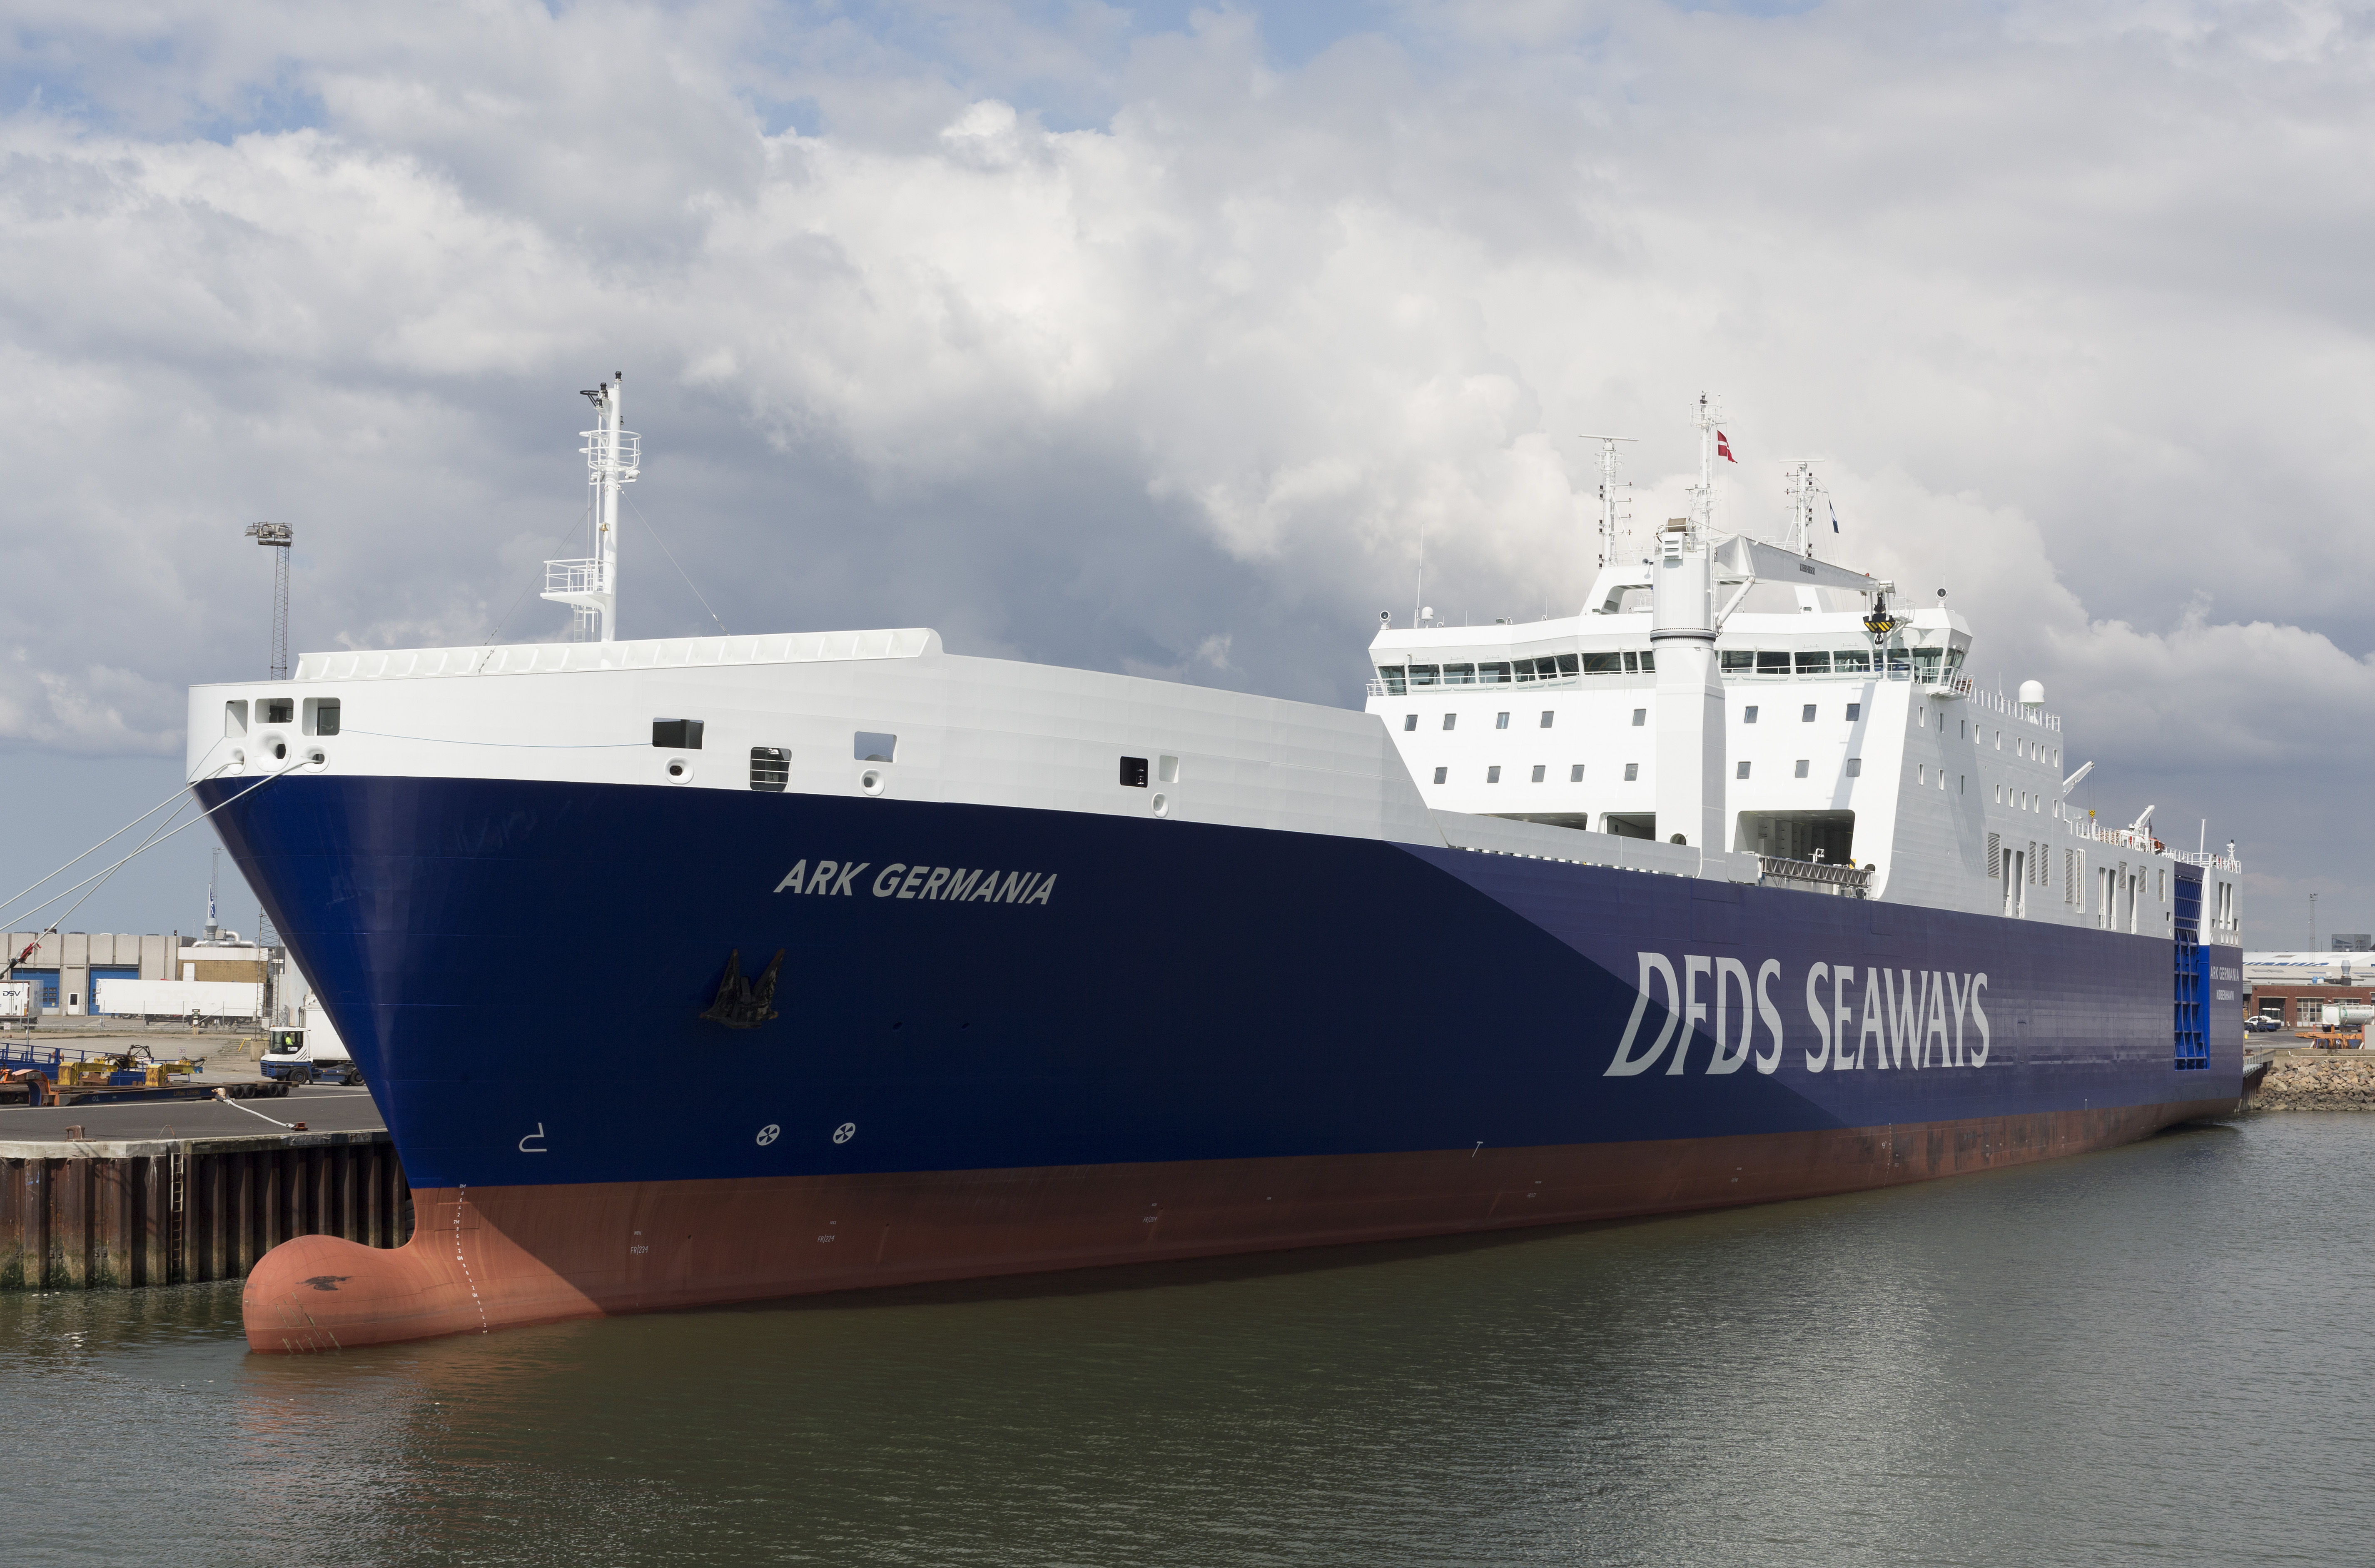 DFDS vessel Ark Germania